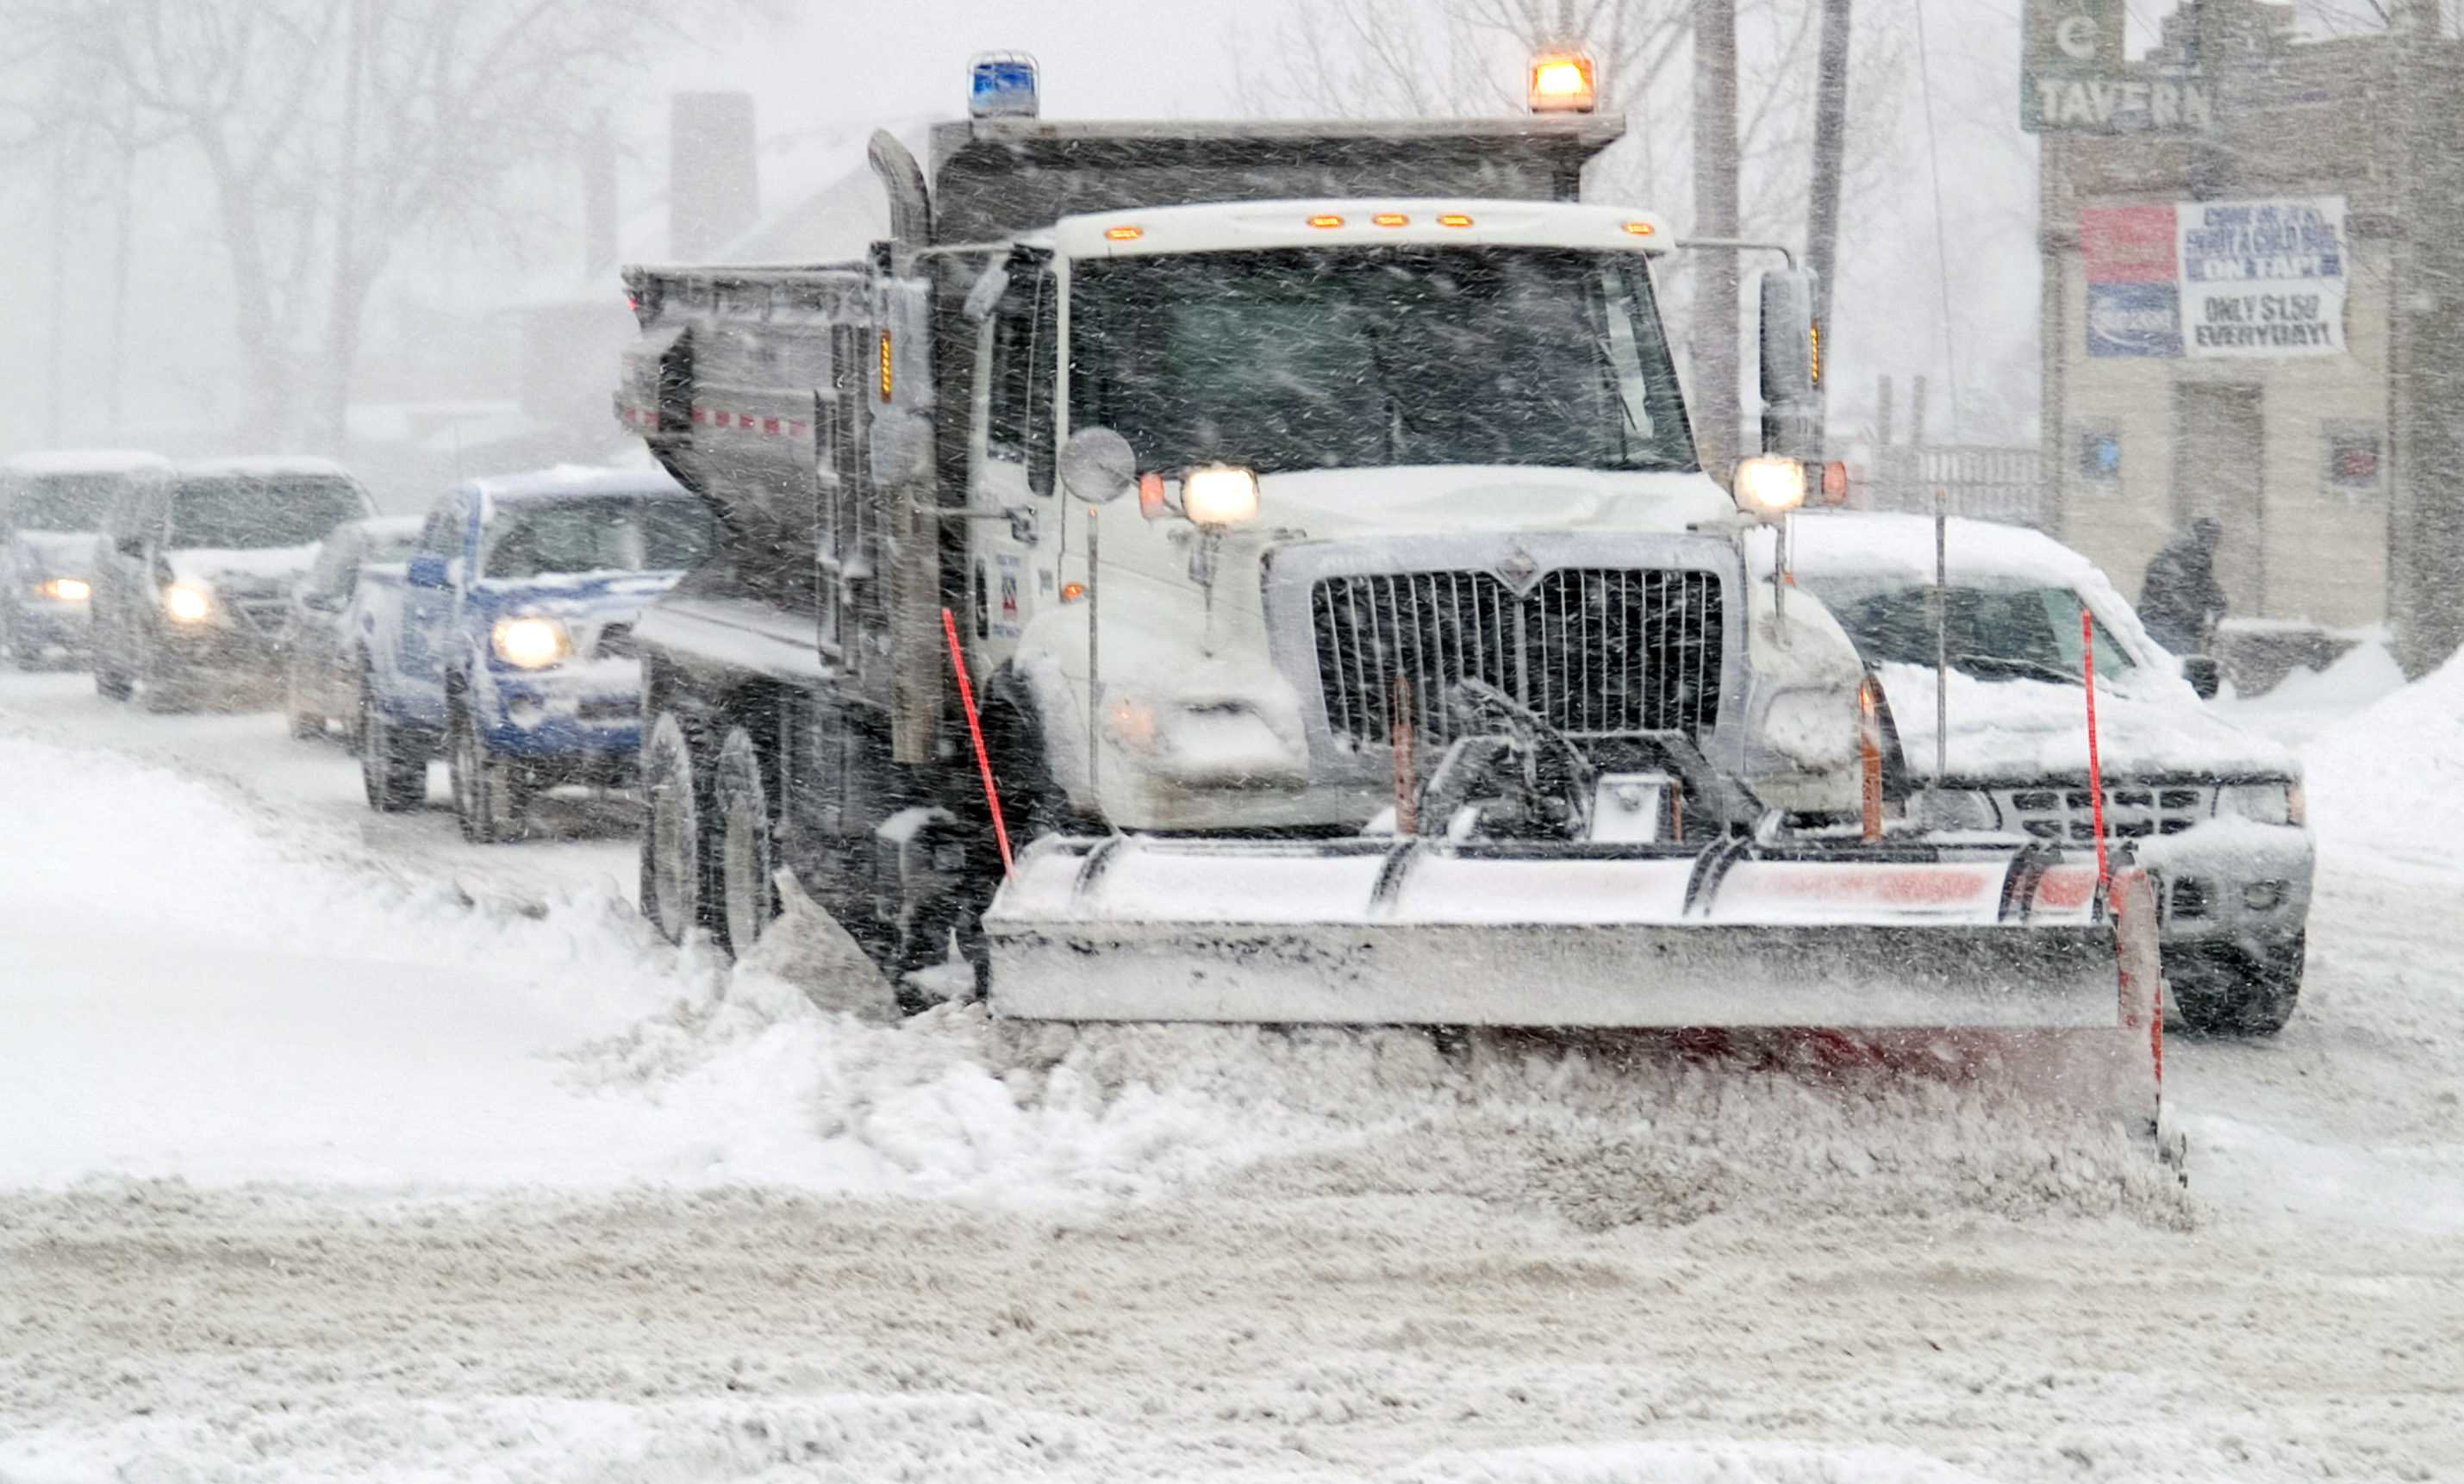 A snow plow clears off the streets for drivers to continue on the roads as snowy conditions continue.